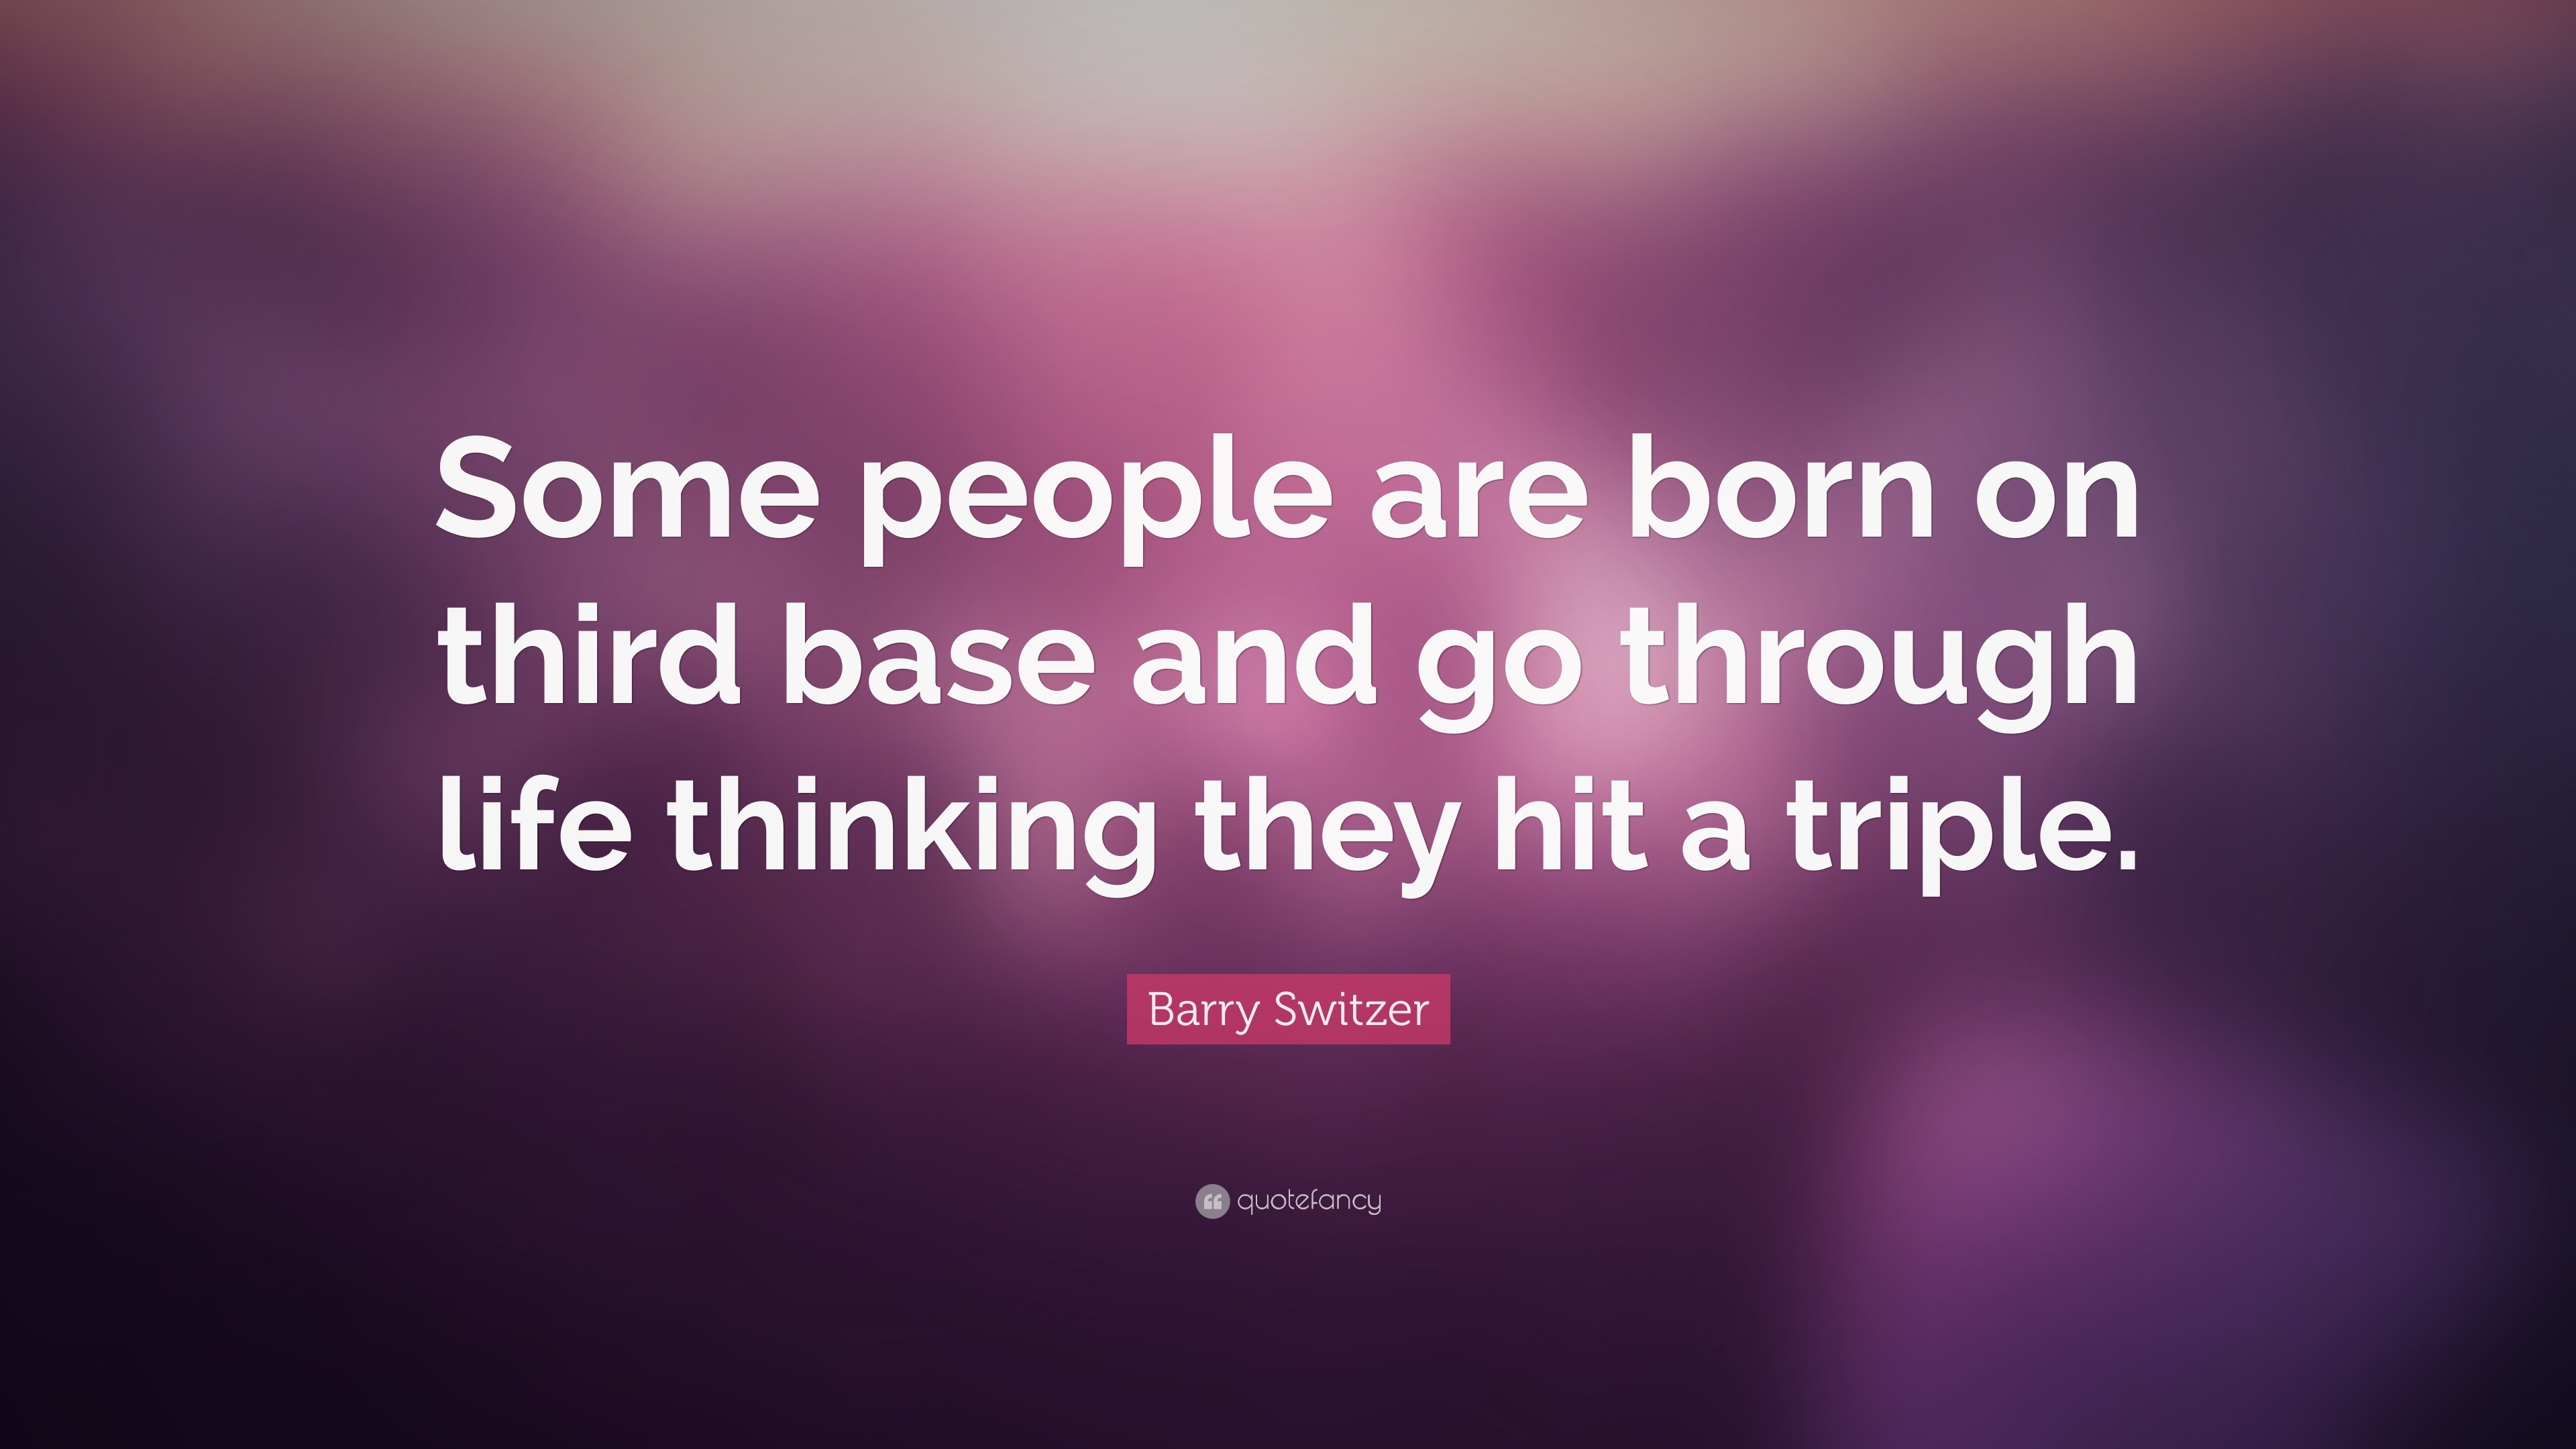 Baseball Quotes Some People Are Born On Third Base And Go Through Life Thinking